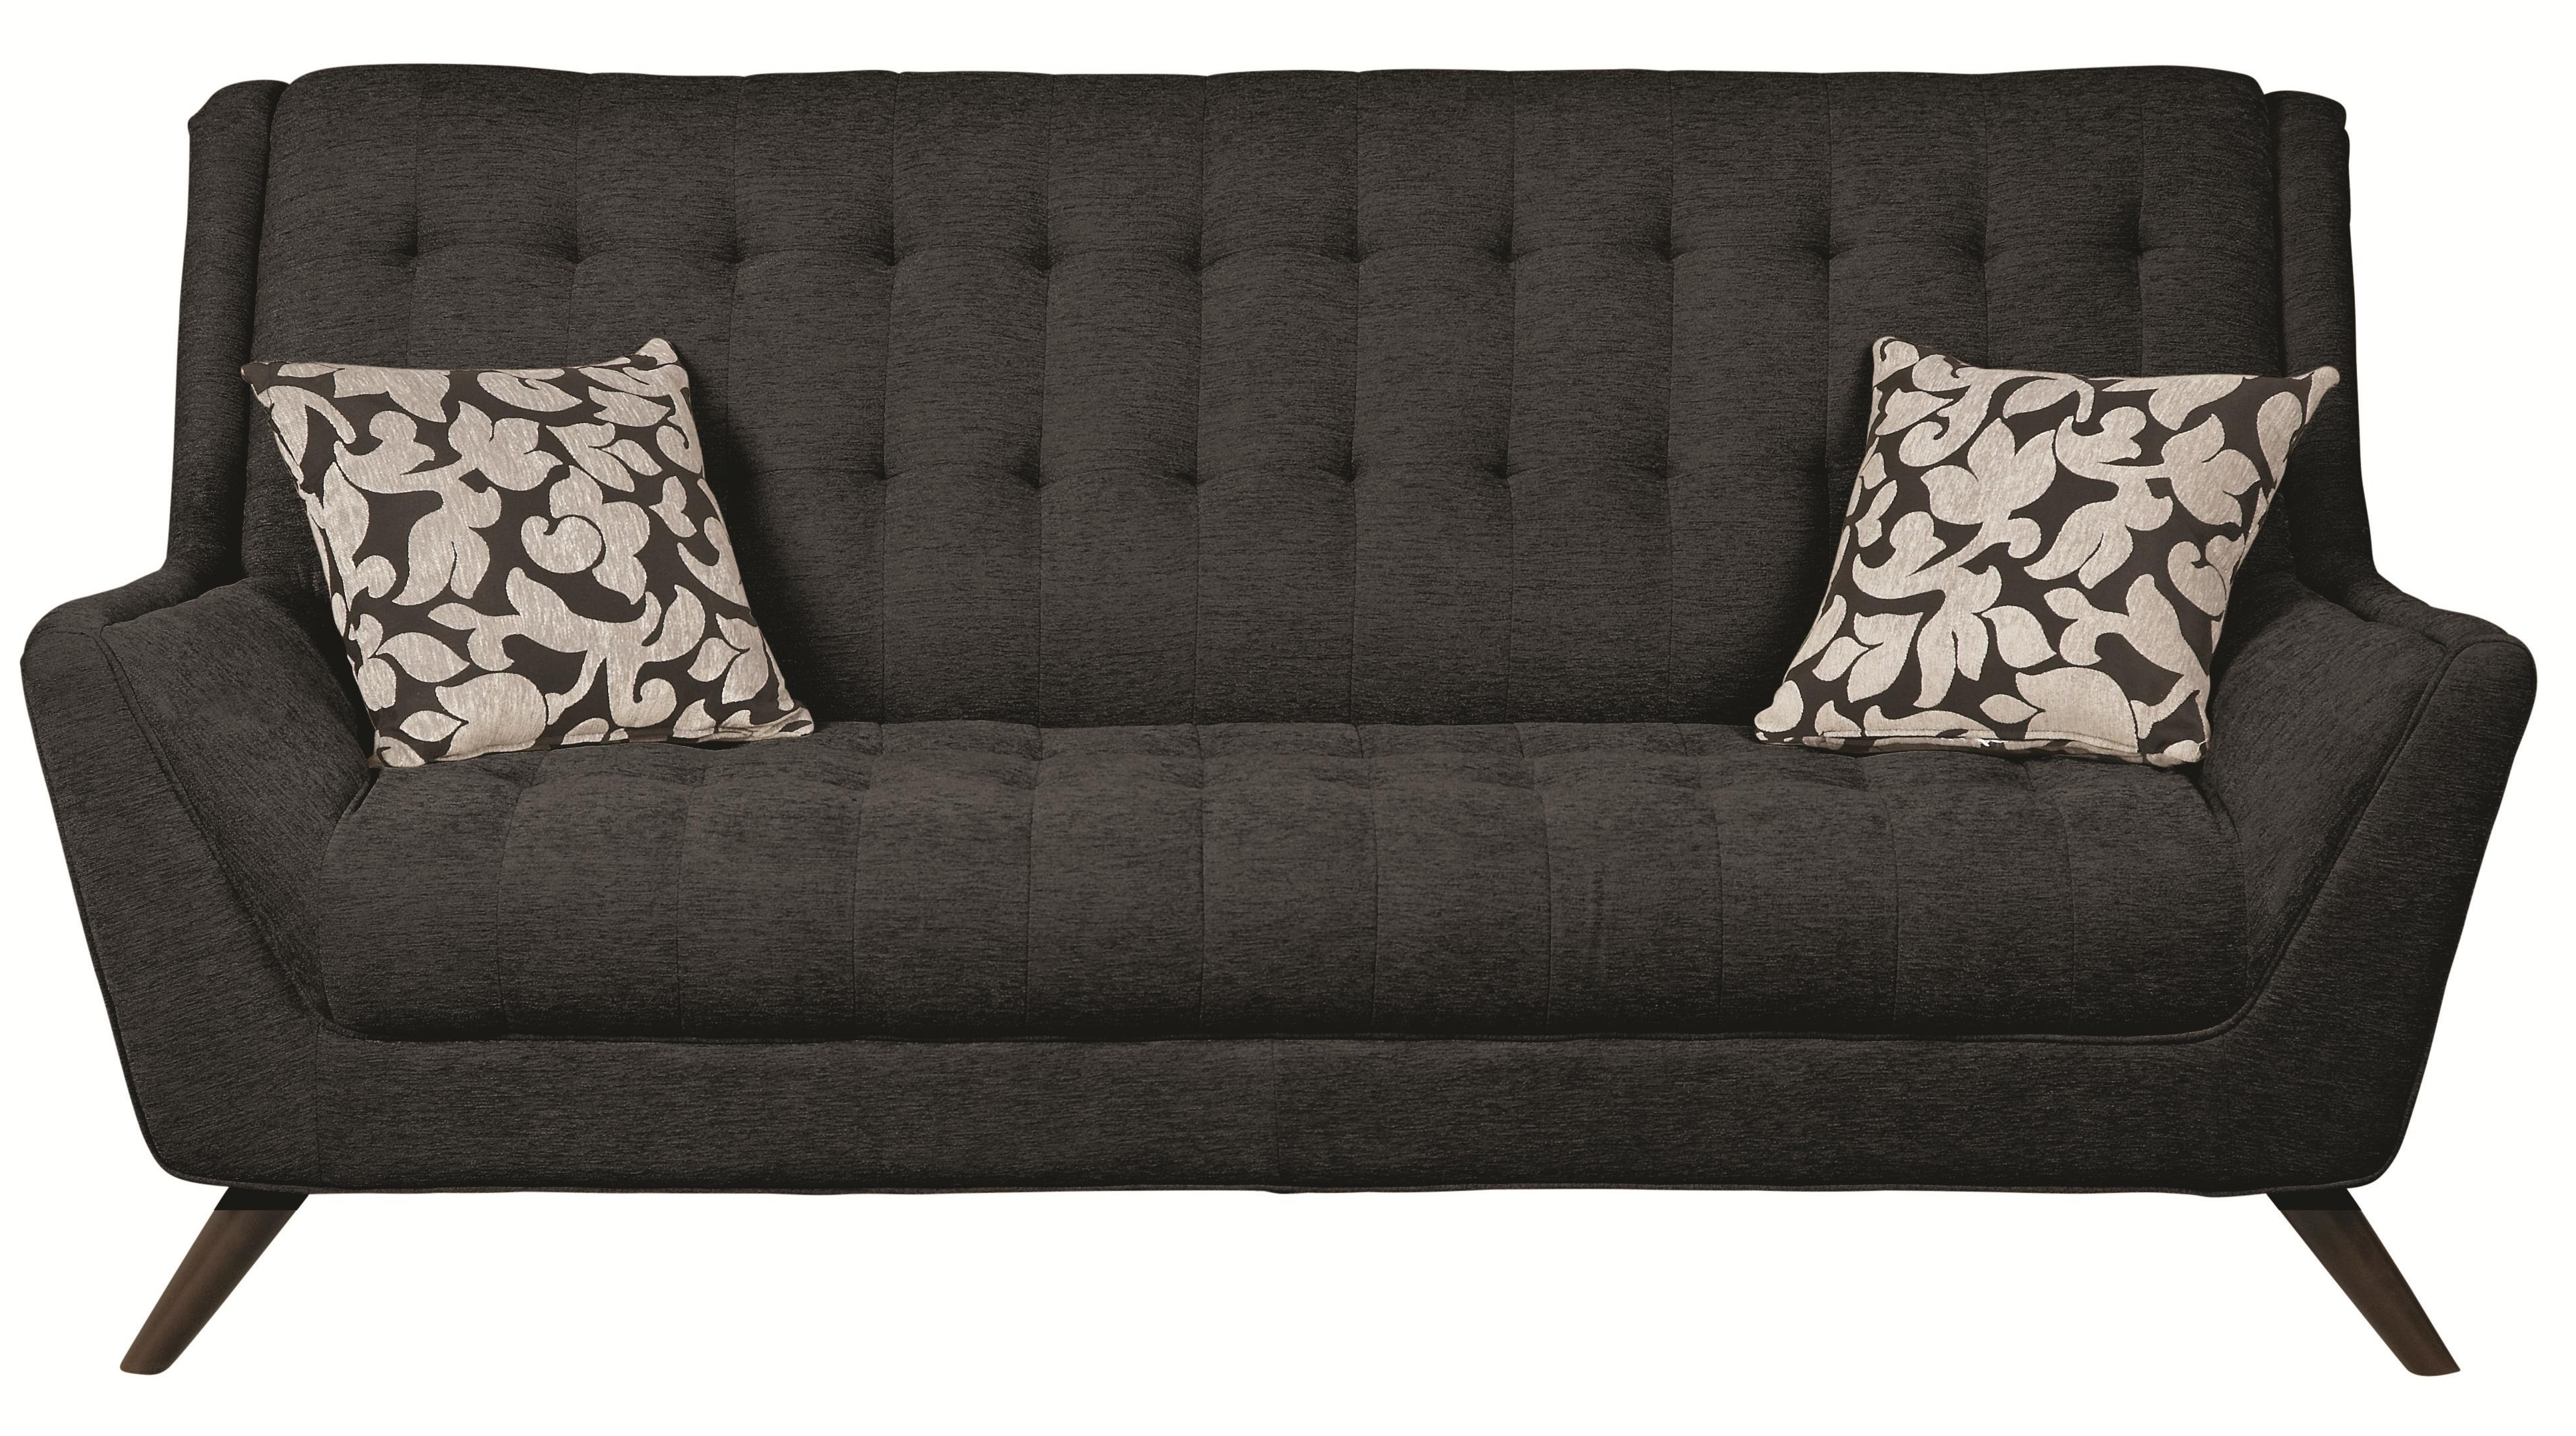 2018 Retro Sofas With Regard To Coaster Natalia 503774 Retro Sofa W/ Flared Arms (View 17 of 20)